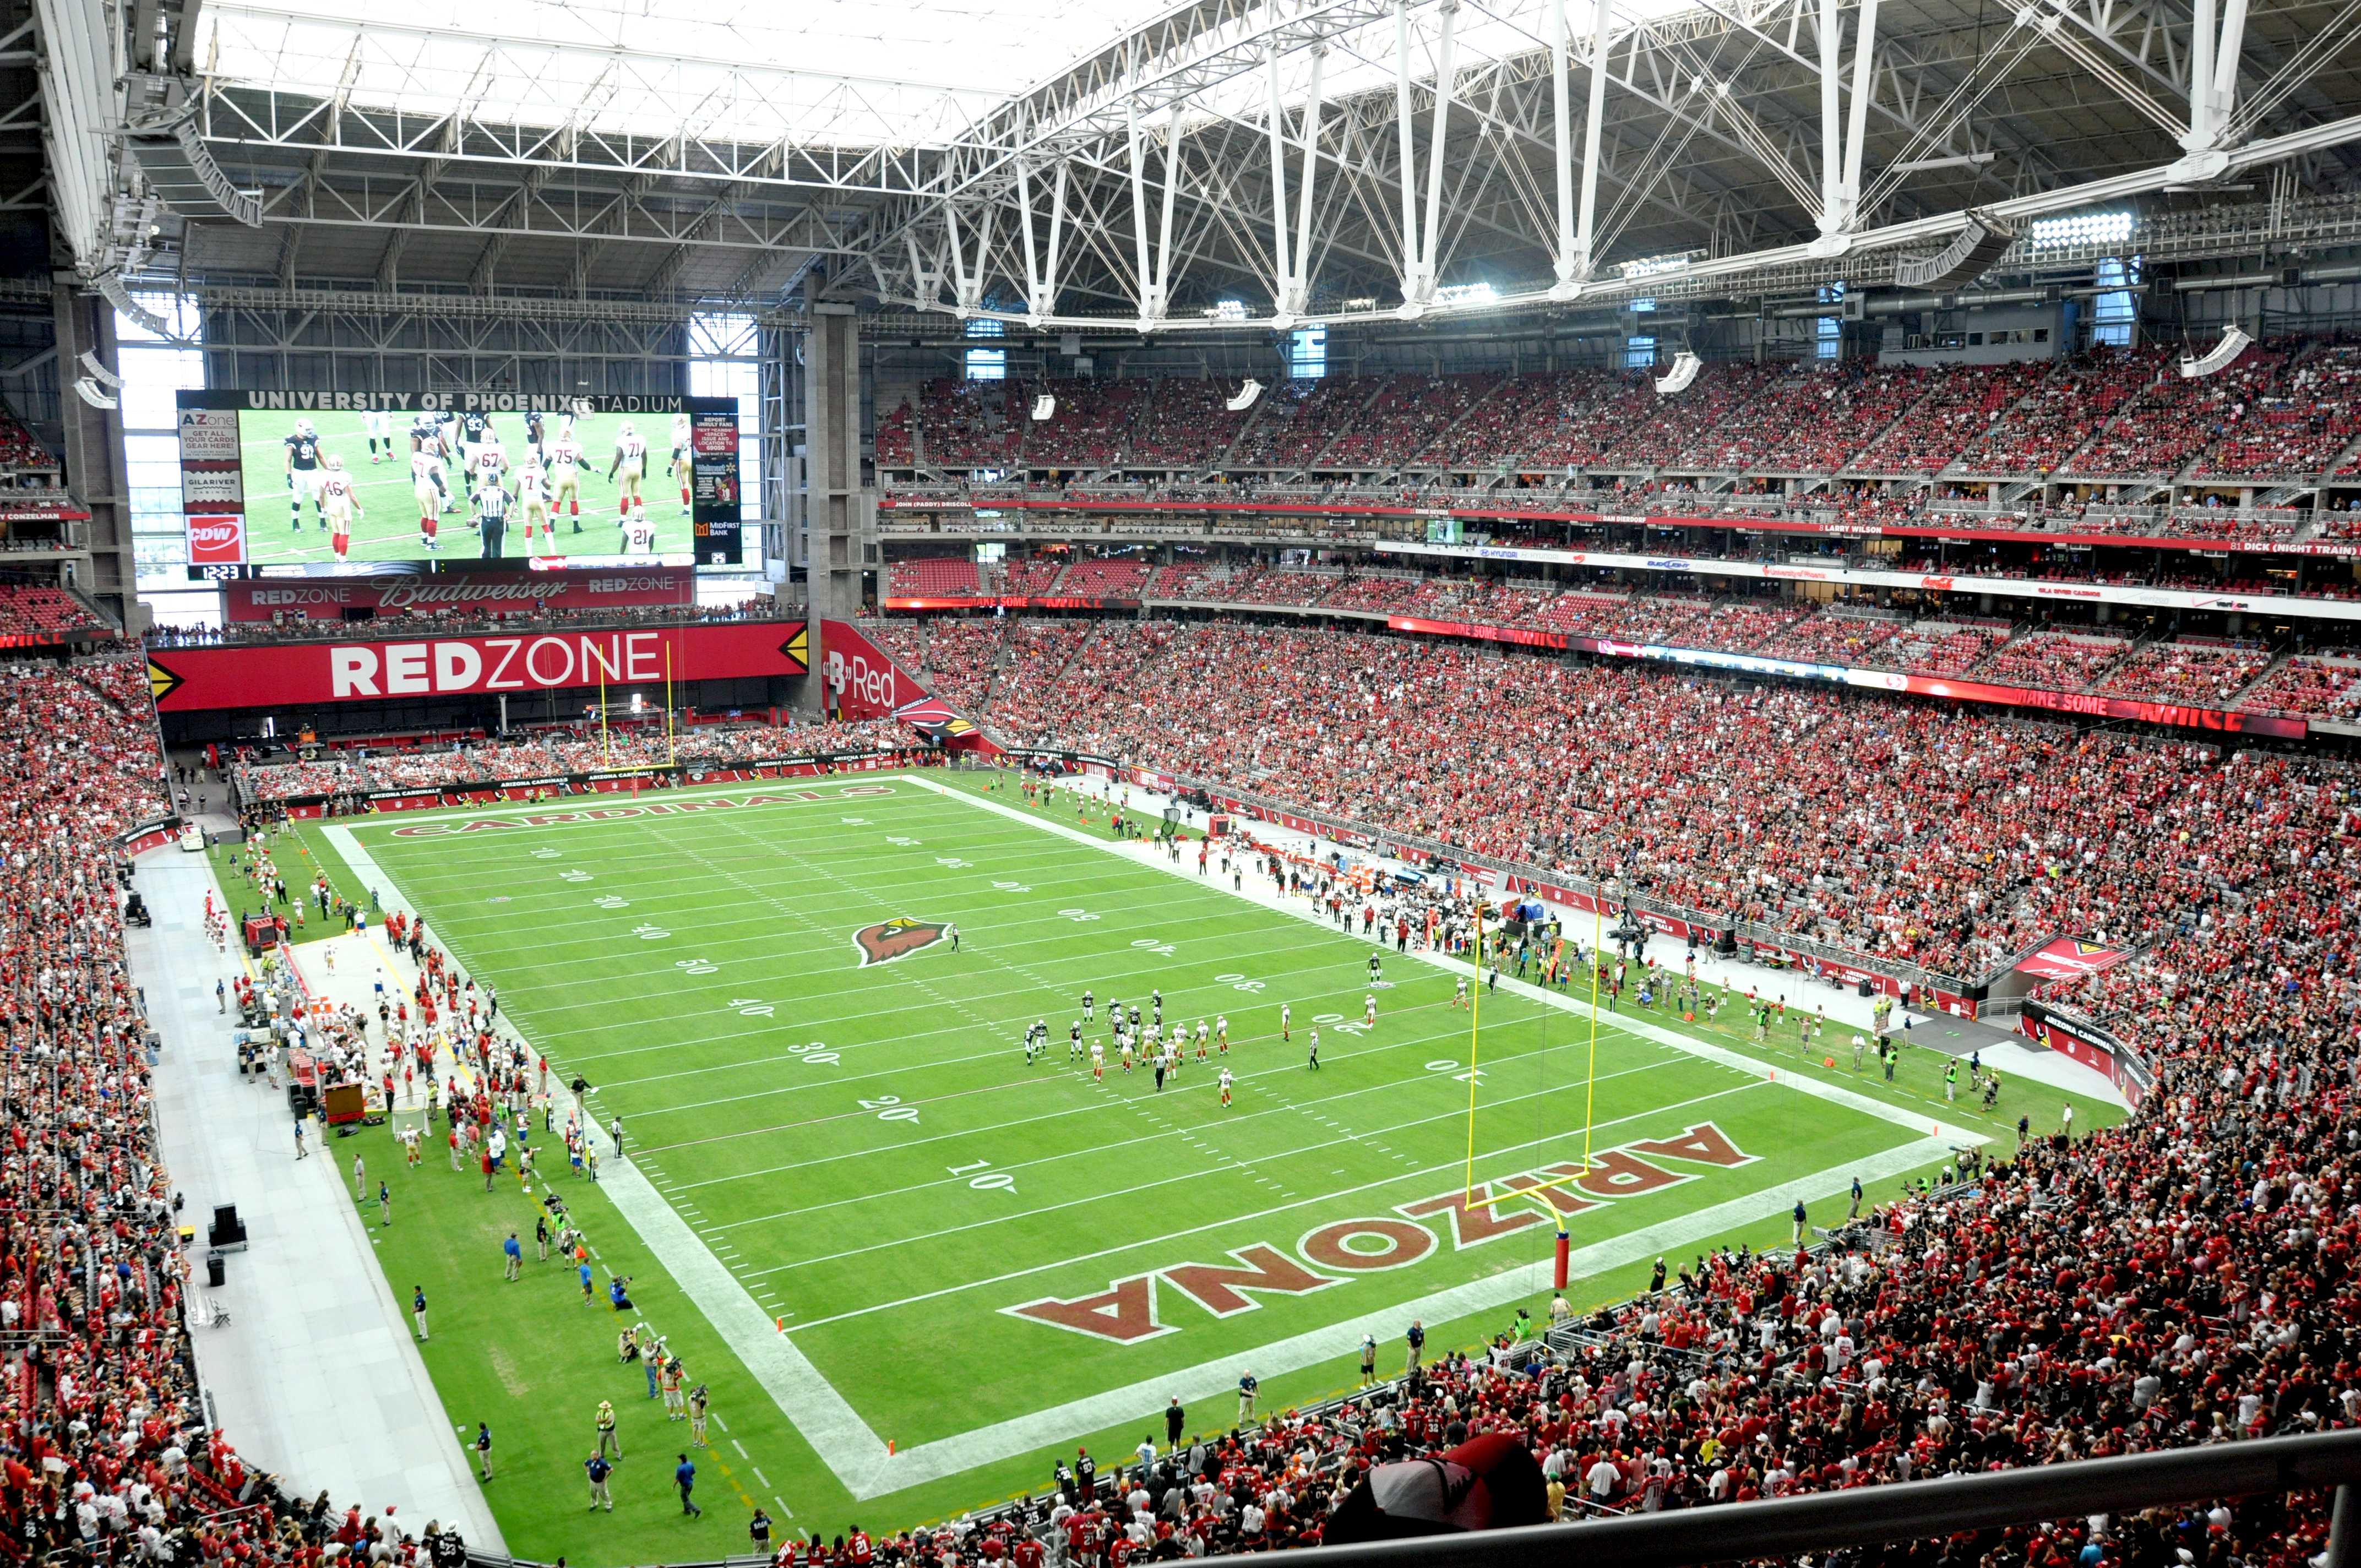 Eaton led illuminating final four at uop stadium us bank for Mercedes benz stadium price